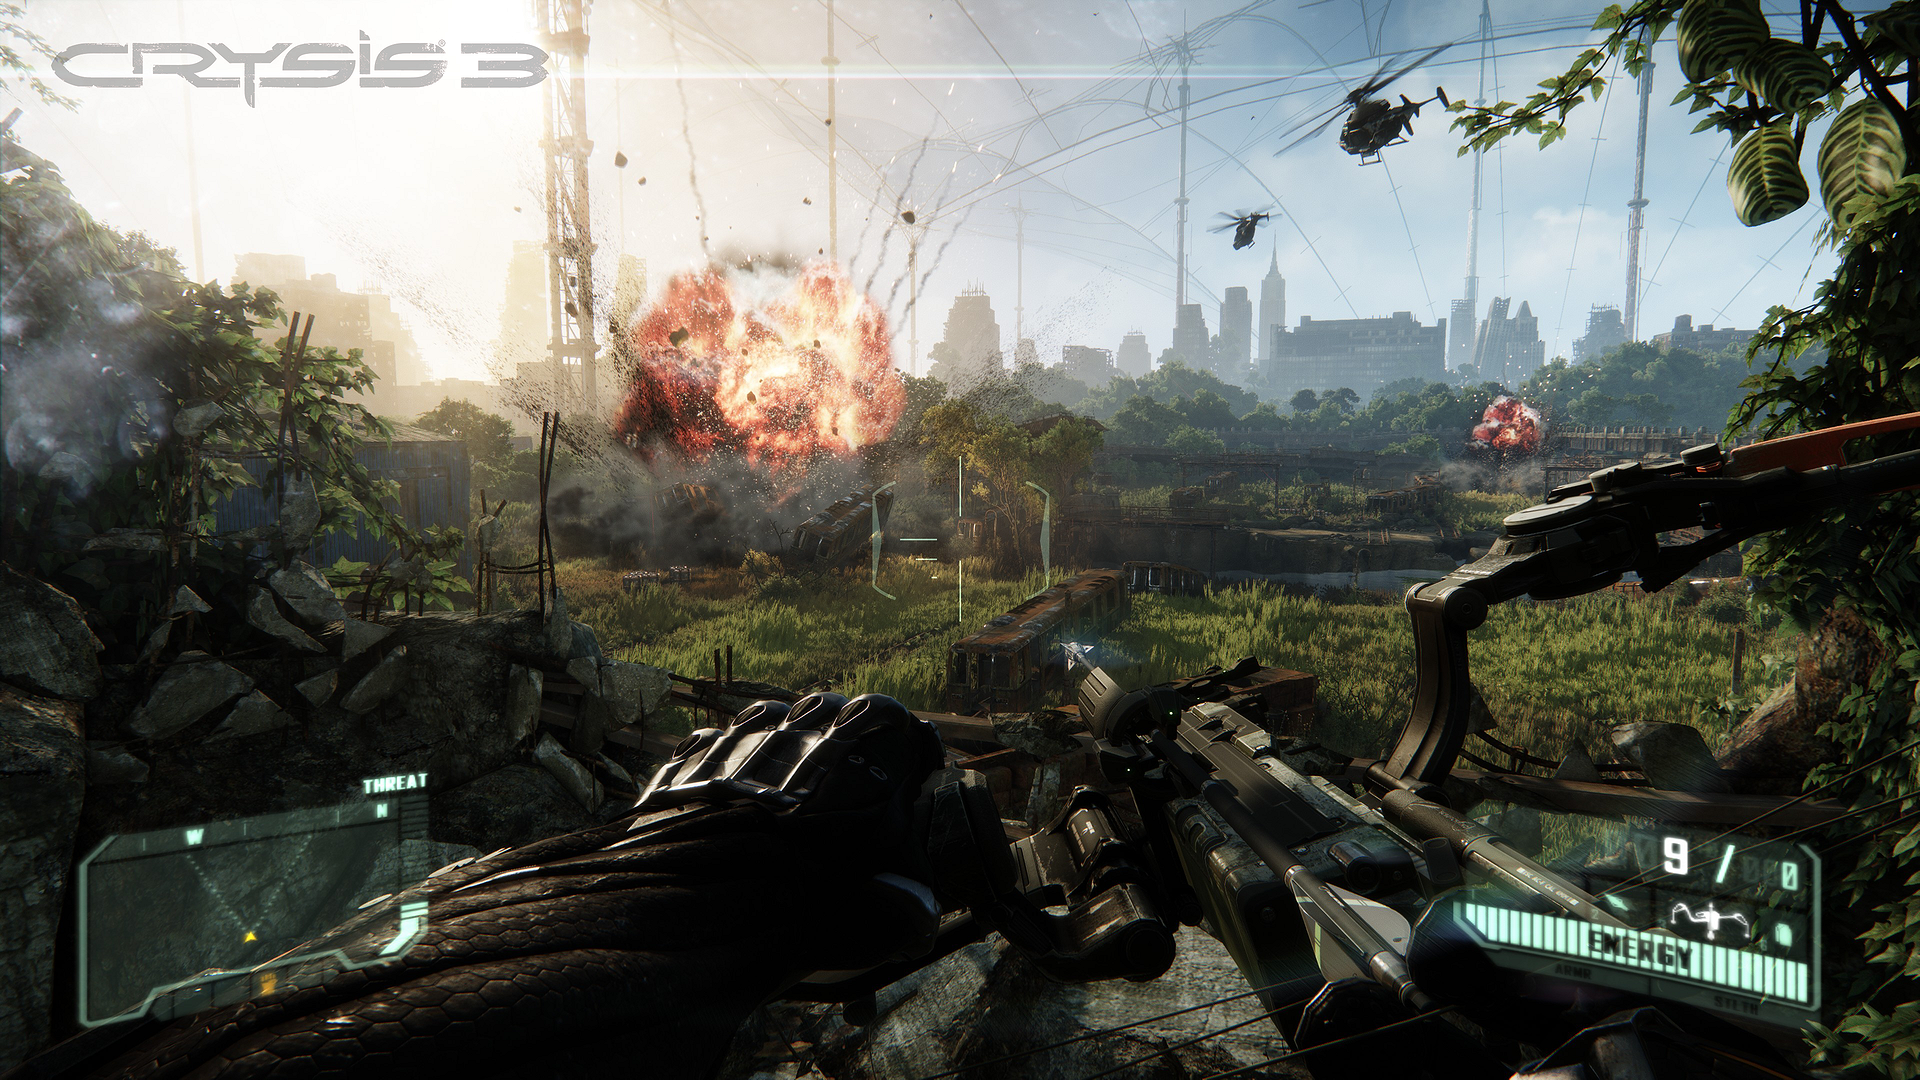 Crysis 3 Explosions Beneath the Liberty Dome